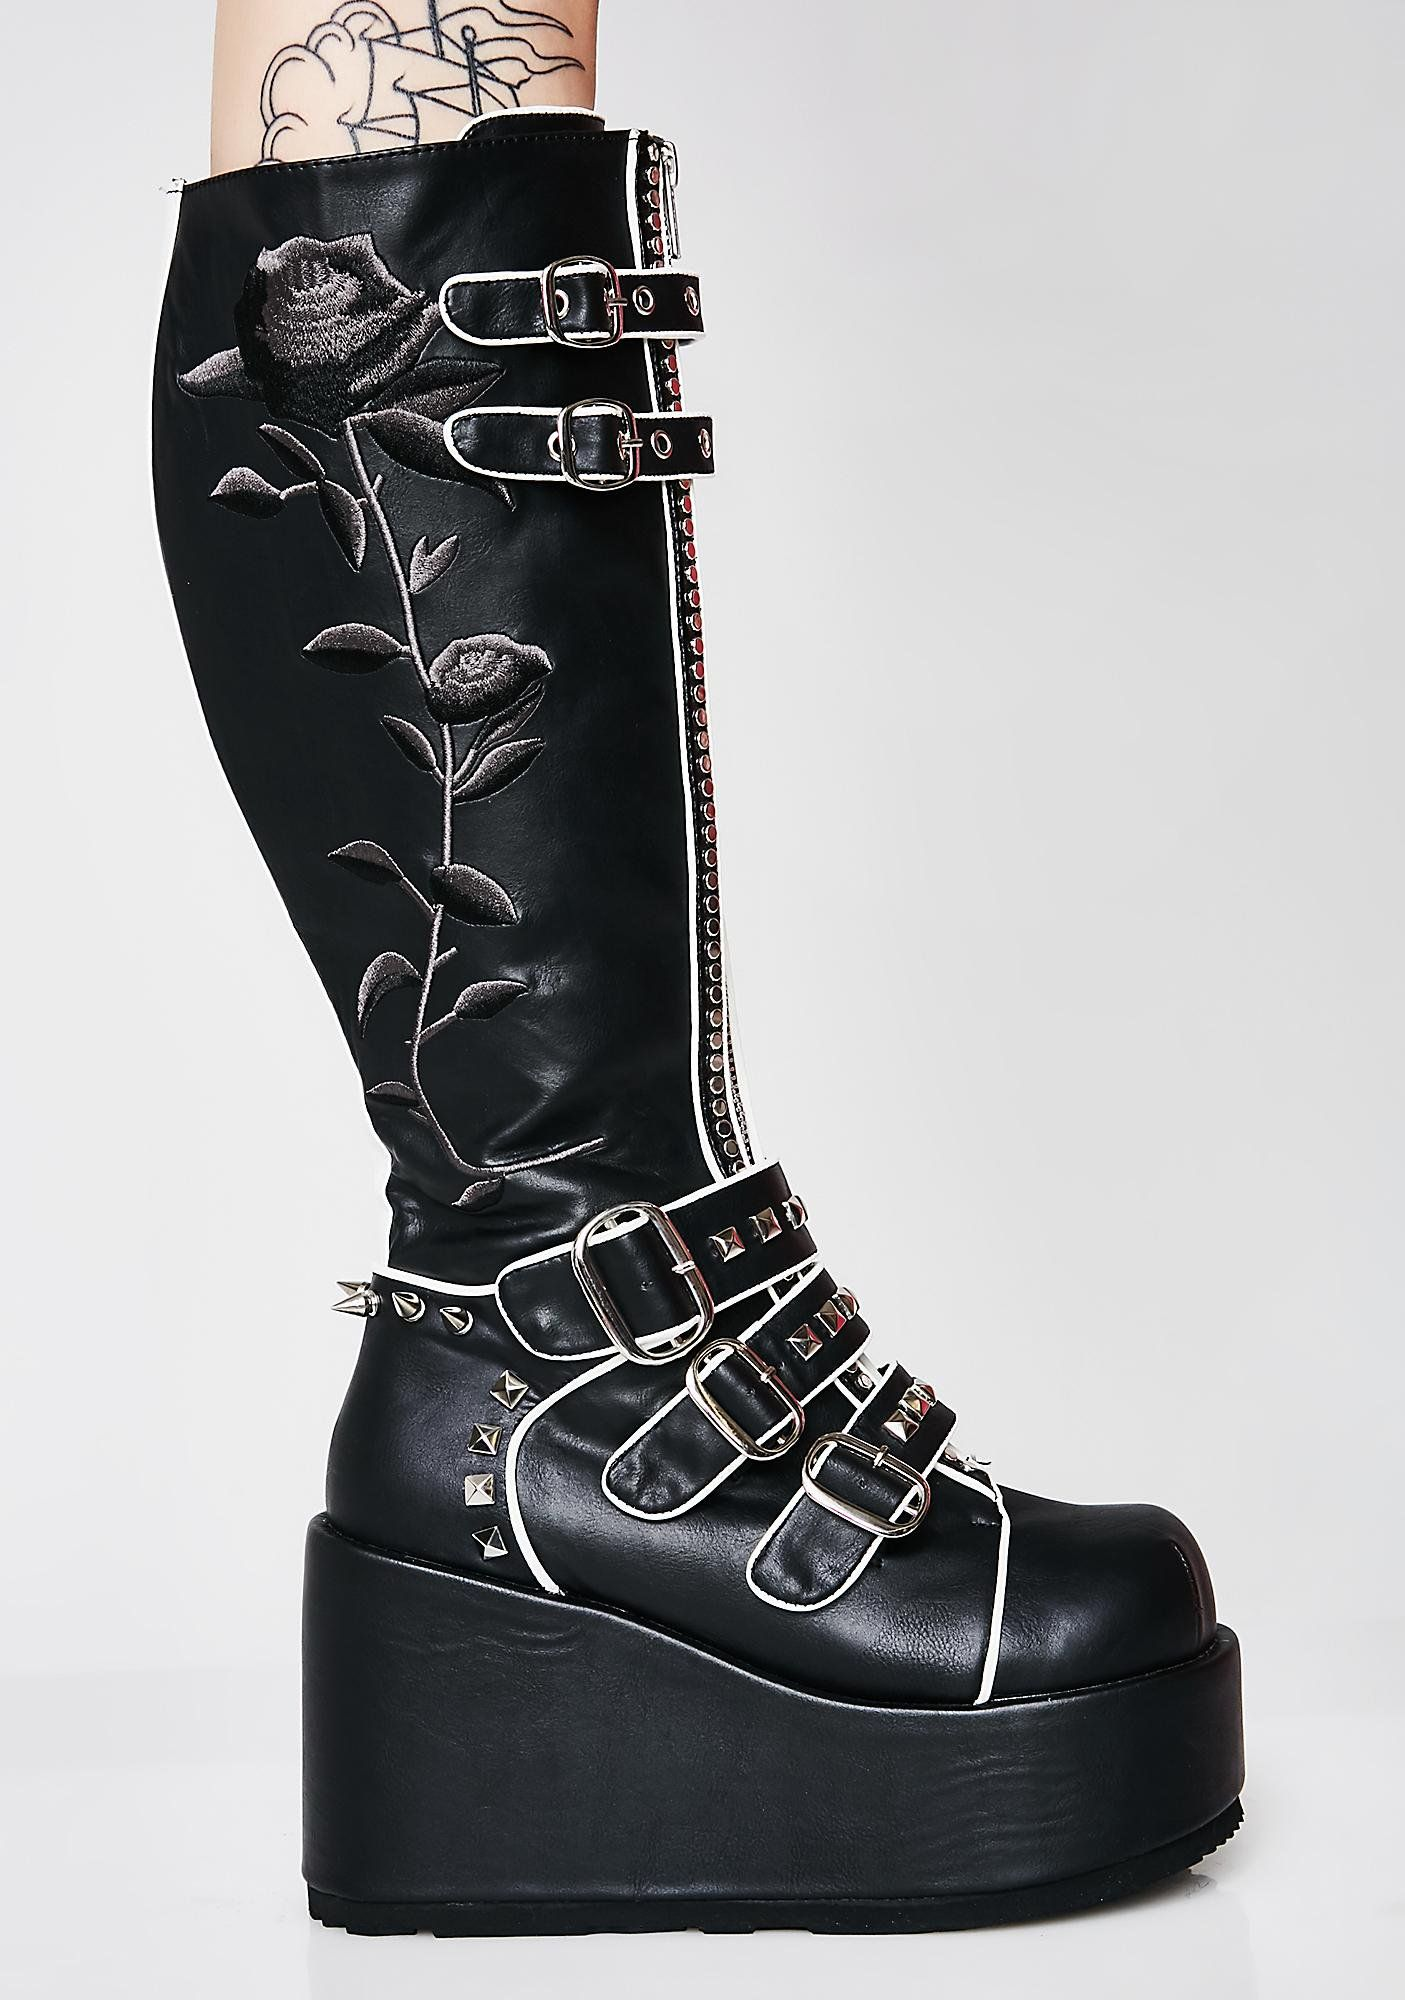 979c1e7371ed Demonia Slaytanic Platform Rose Boots cuz you re queen of the damned. Rule  over  em in these sikk platform boots that have embroidered rose